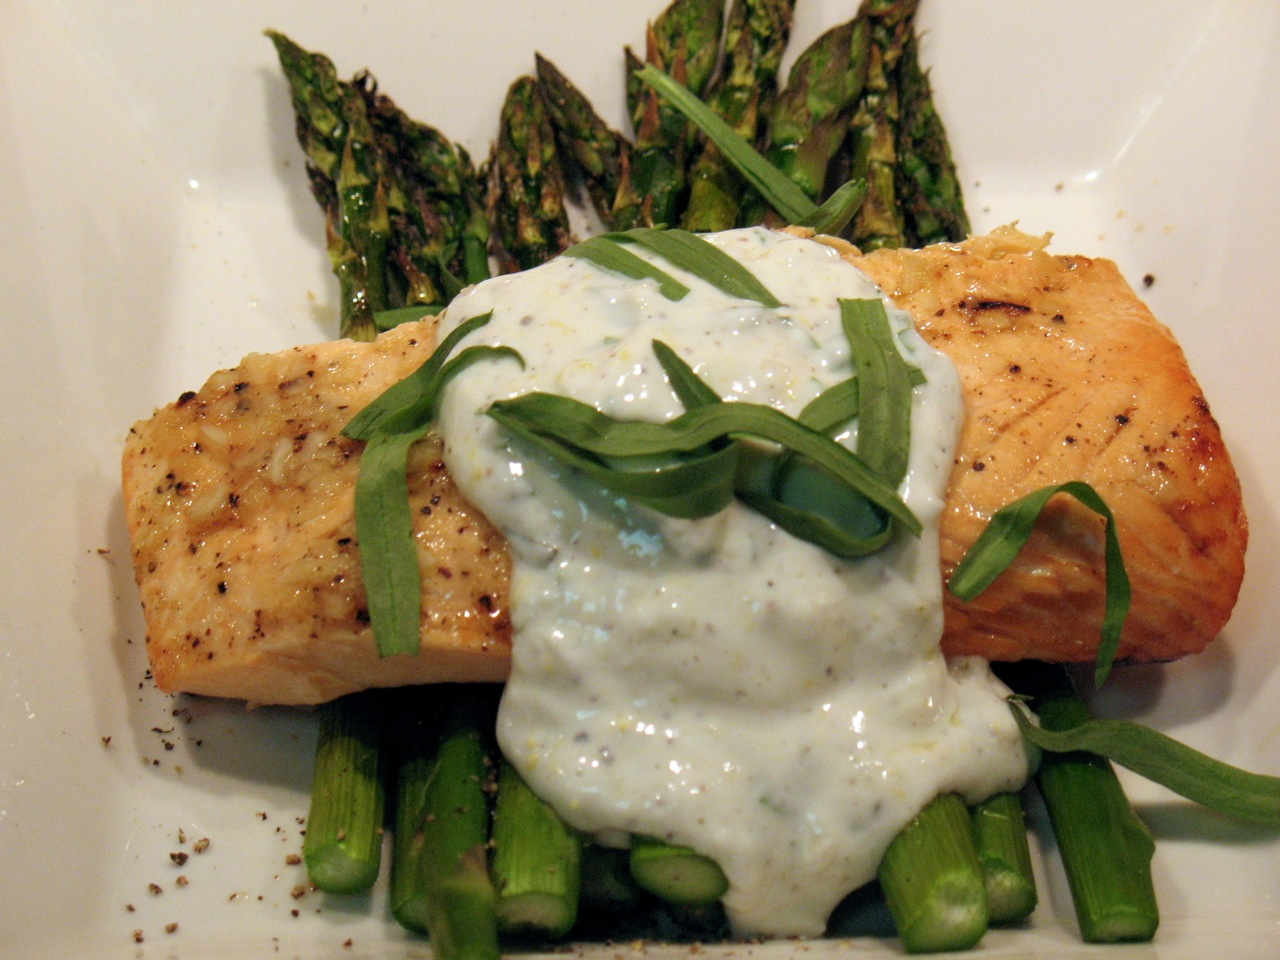 This Is A Tangy Springleaning Sauce To Brighten Up Broiled Salmon With  Asparagus I Recently Discovered The Utility Of Greek Yogurt It Has Great  Texture,